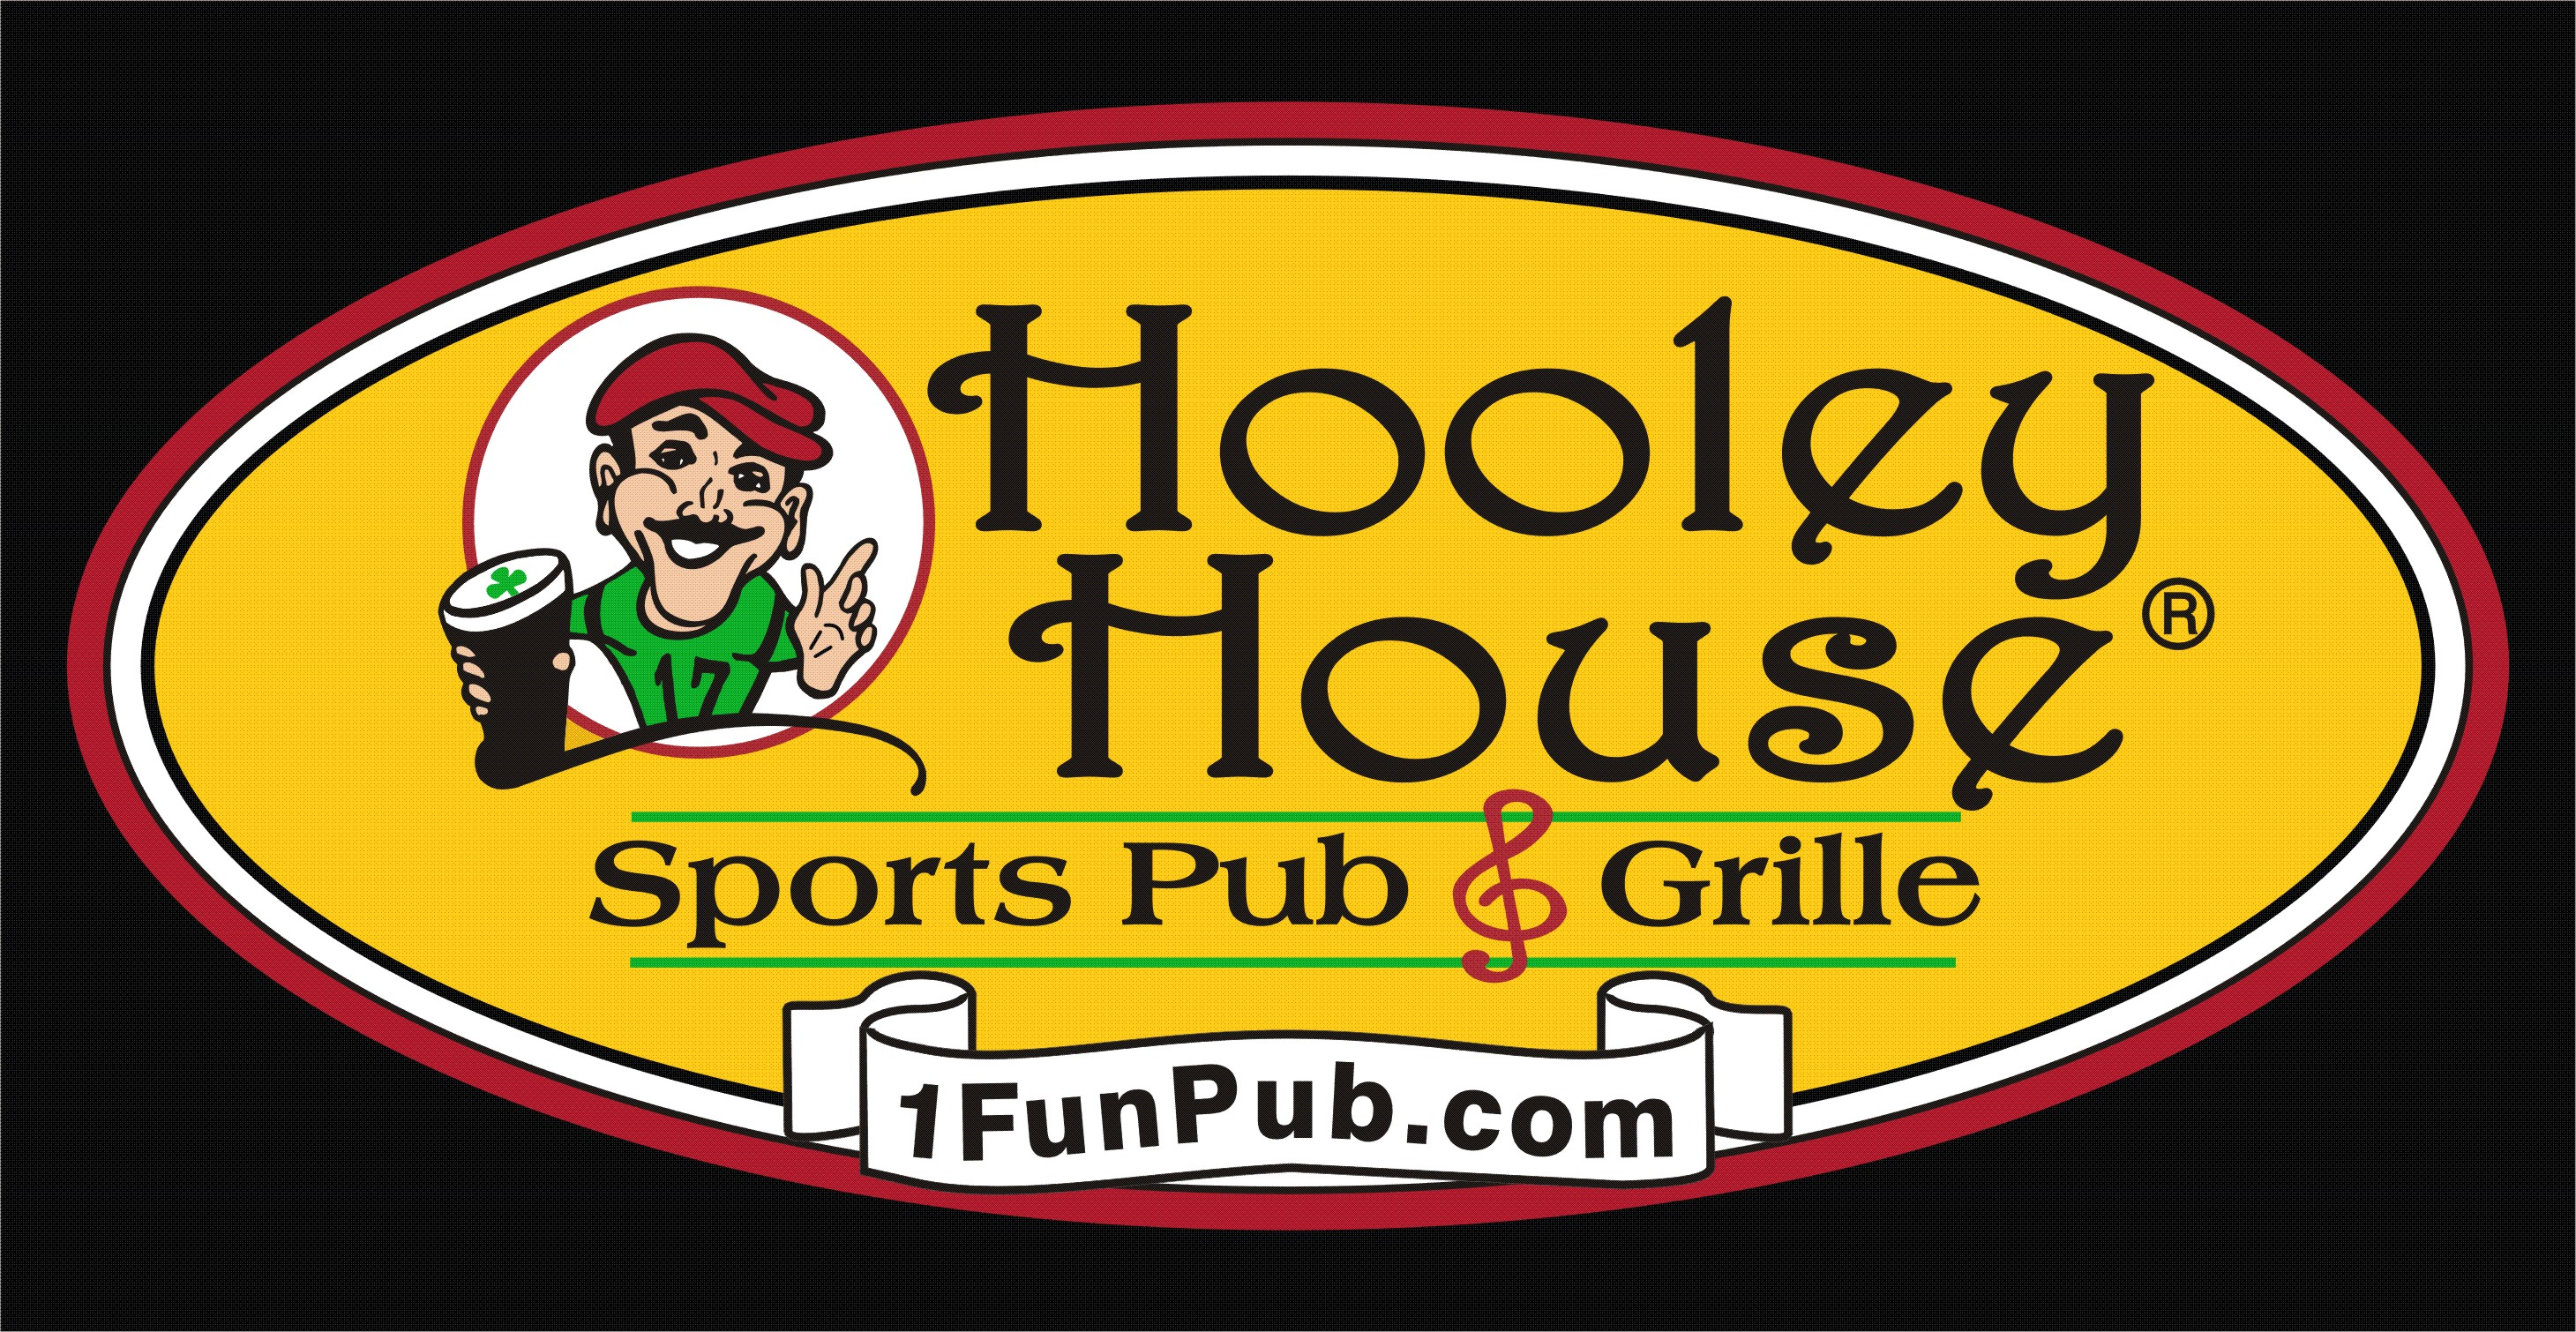 You Are Invited To A V.I.P. Party At The NEW Hooley House Sports Bar U0026  Grille Located At 10310 Cascade Crossings In Brooklyn. The Event Is Being  Held On ...